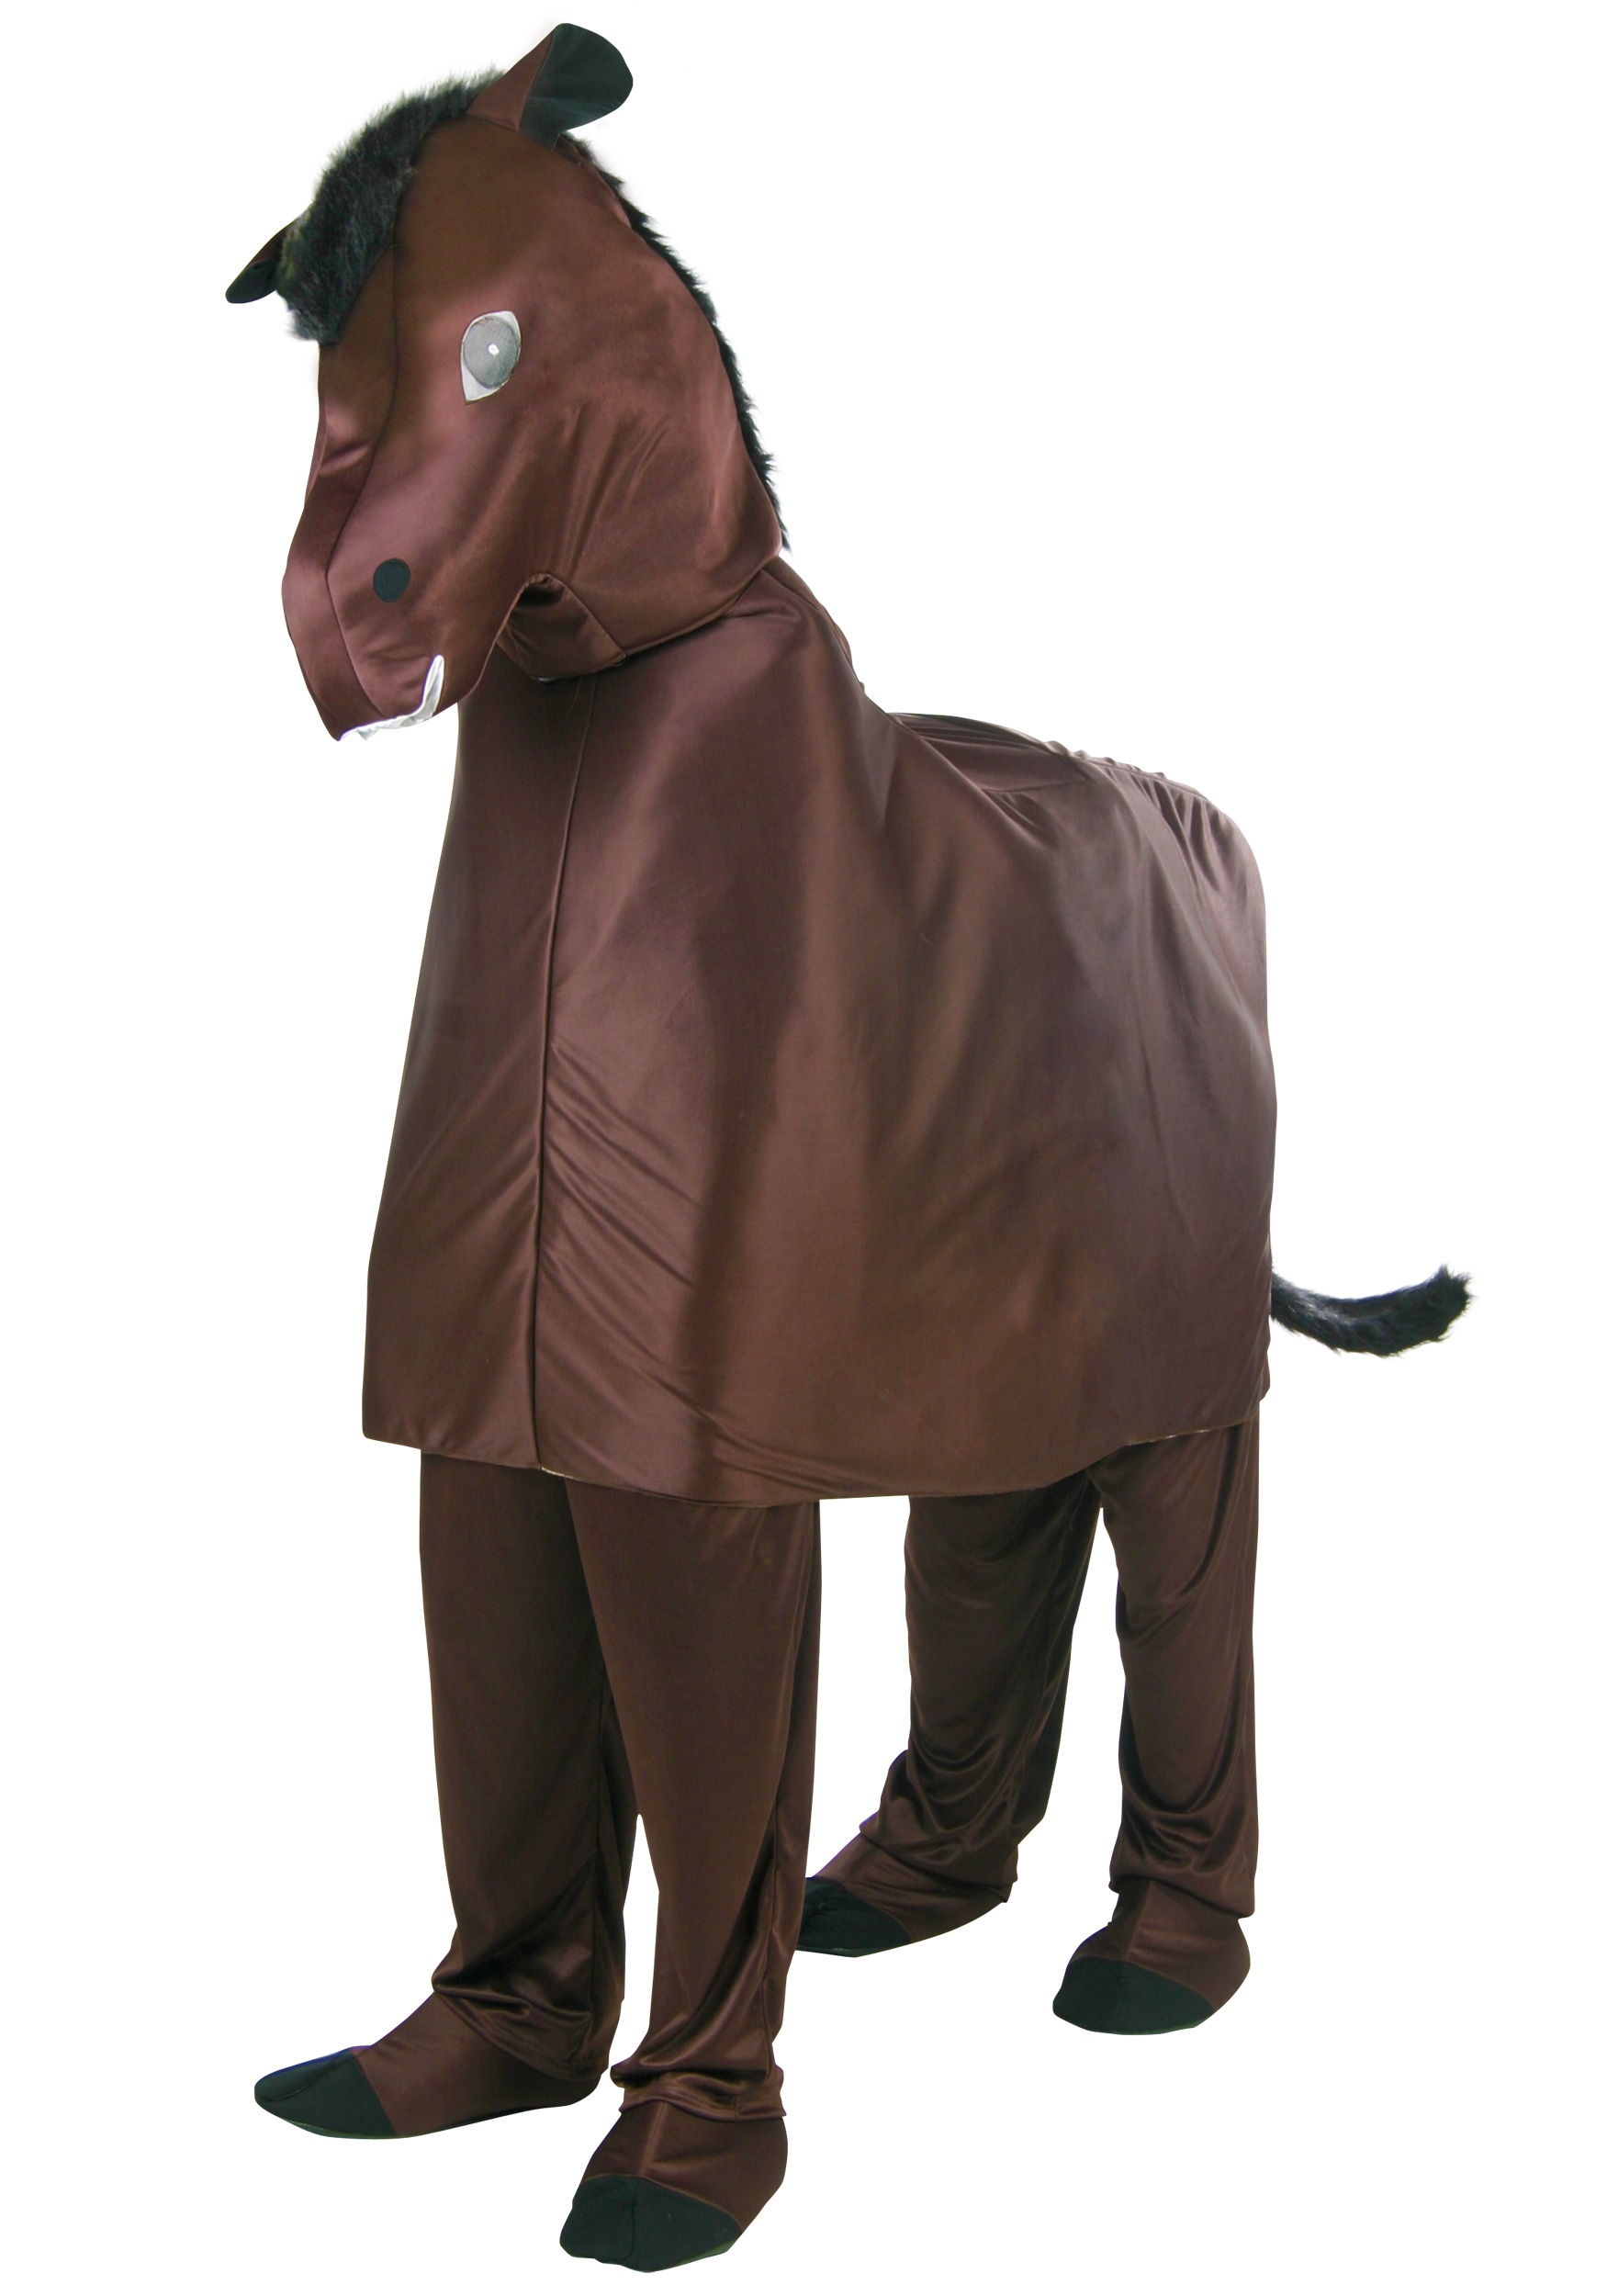 sc 1 st  Halloween Costumes : horse costume two person  - Germanpascual.Com